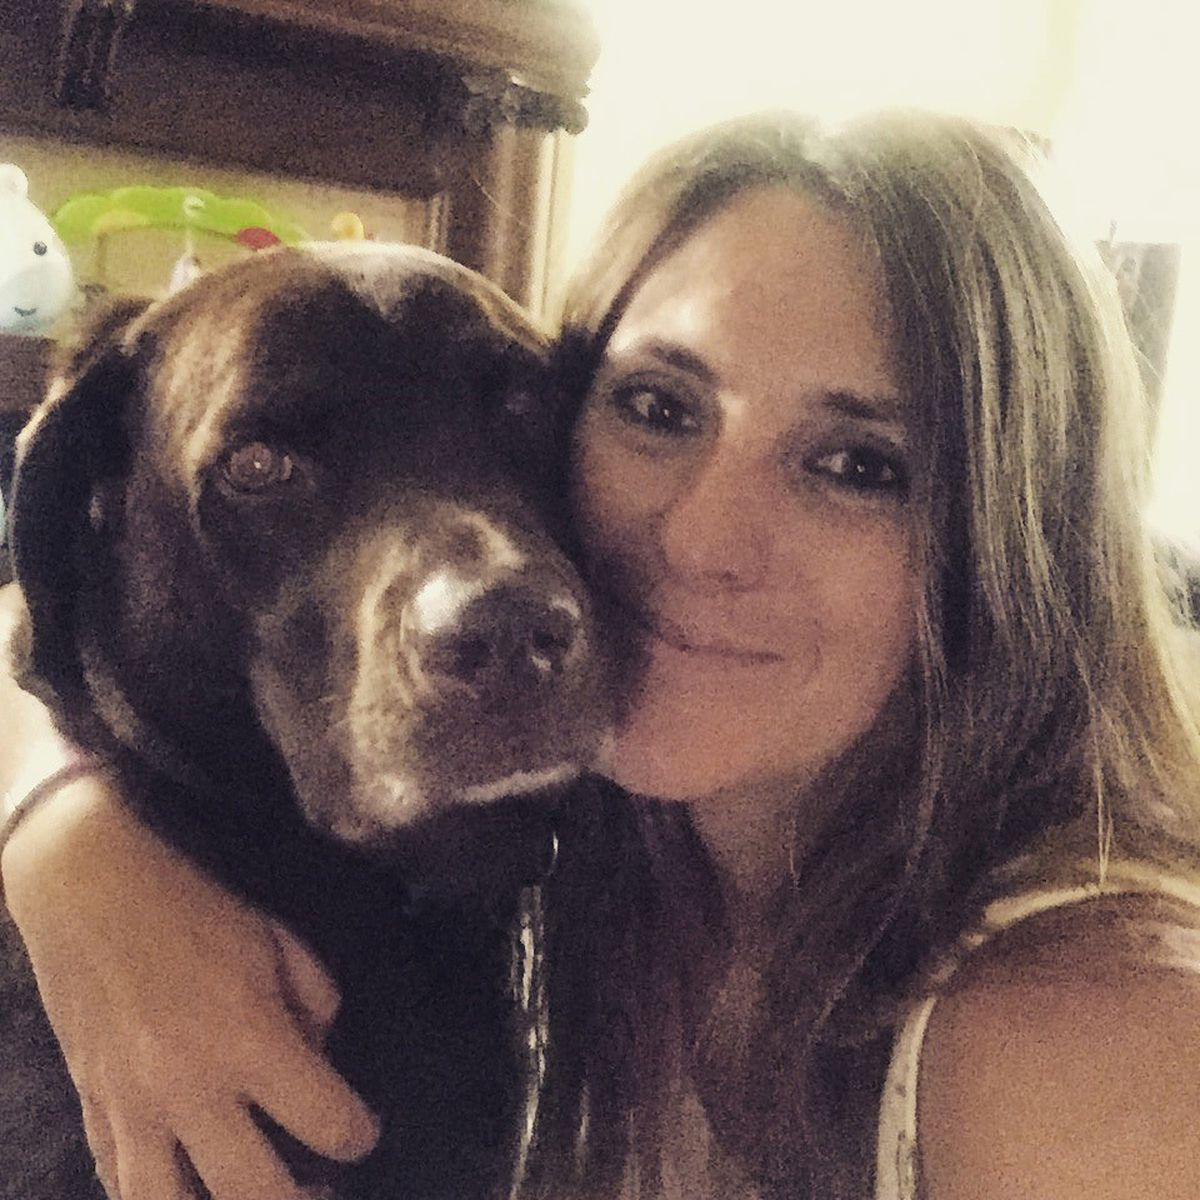 Lisa McCombs says she was barred from boarding multiple American Airlines flights because she was traveling with her service dog, Jake. (Photo courtesyLisa McCombs)